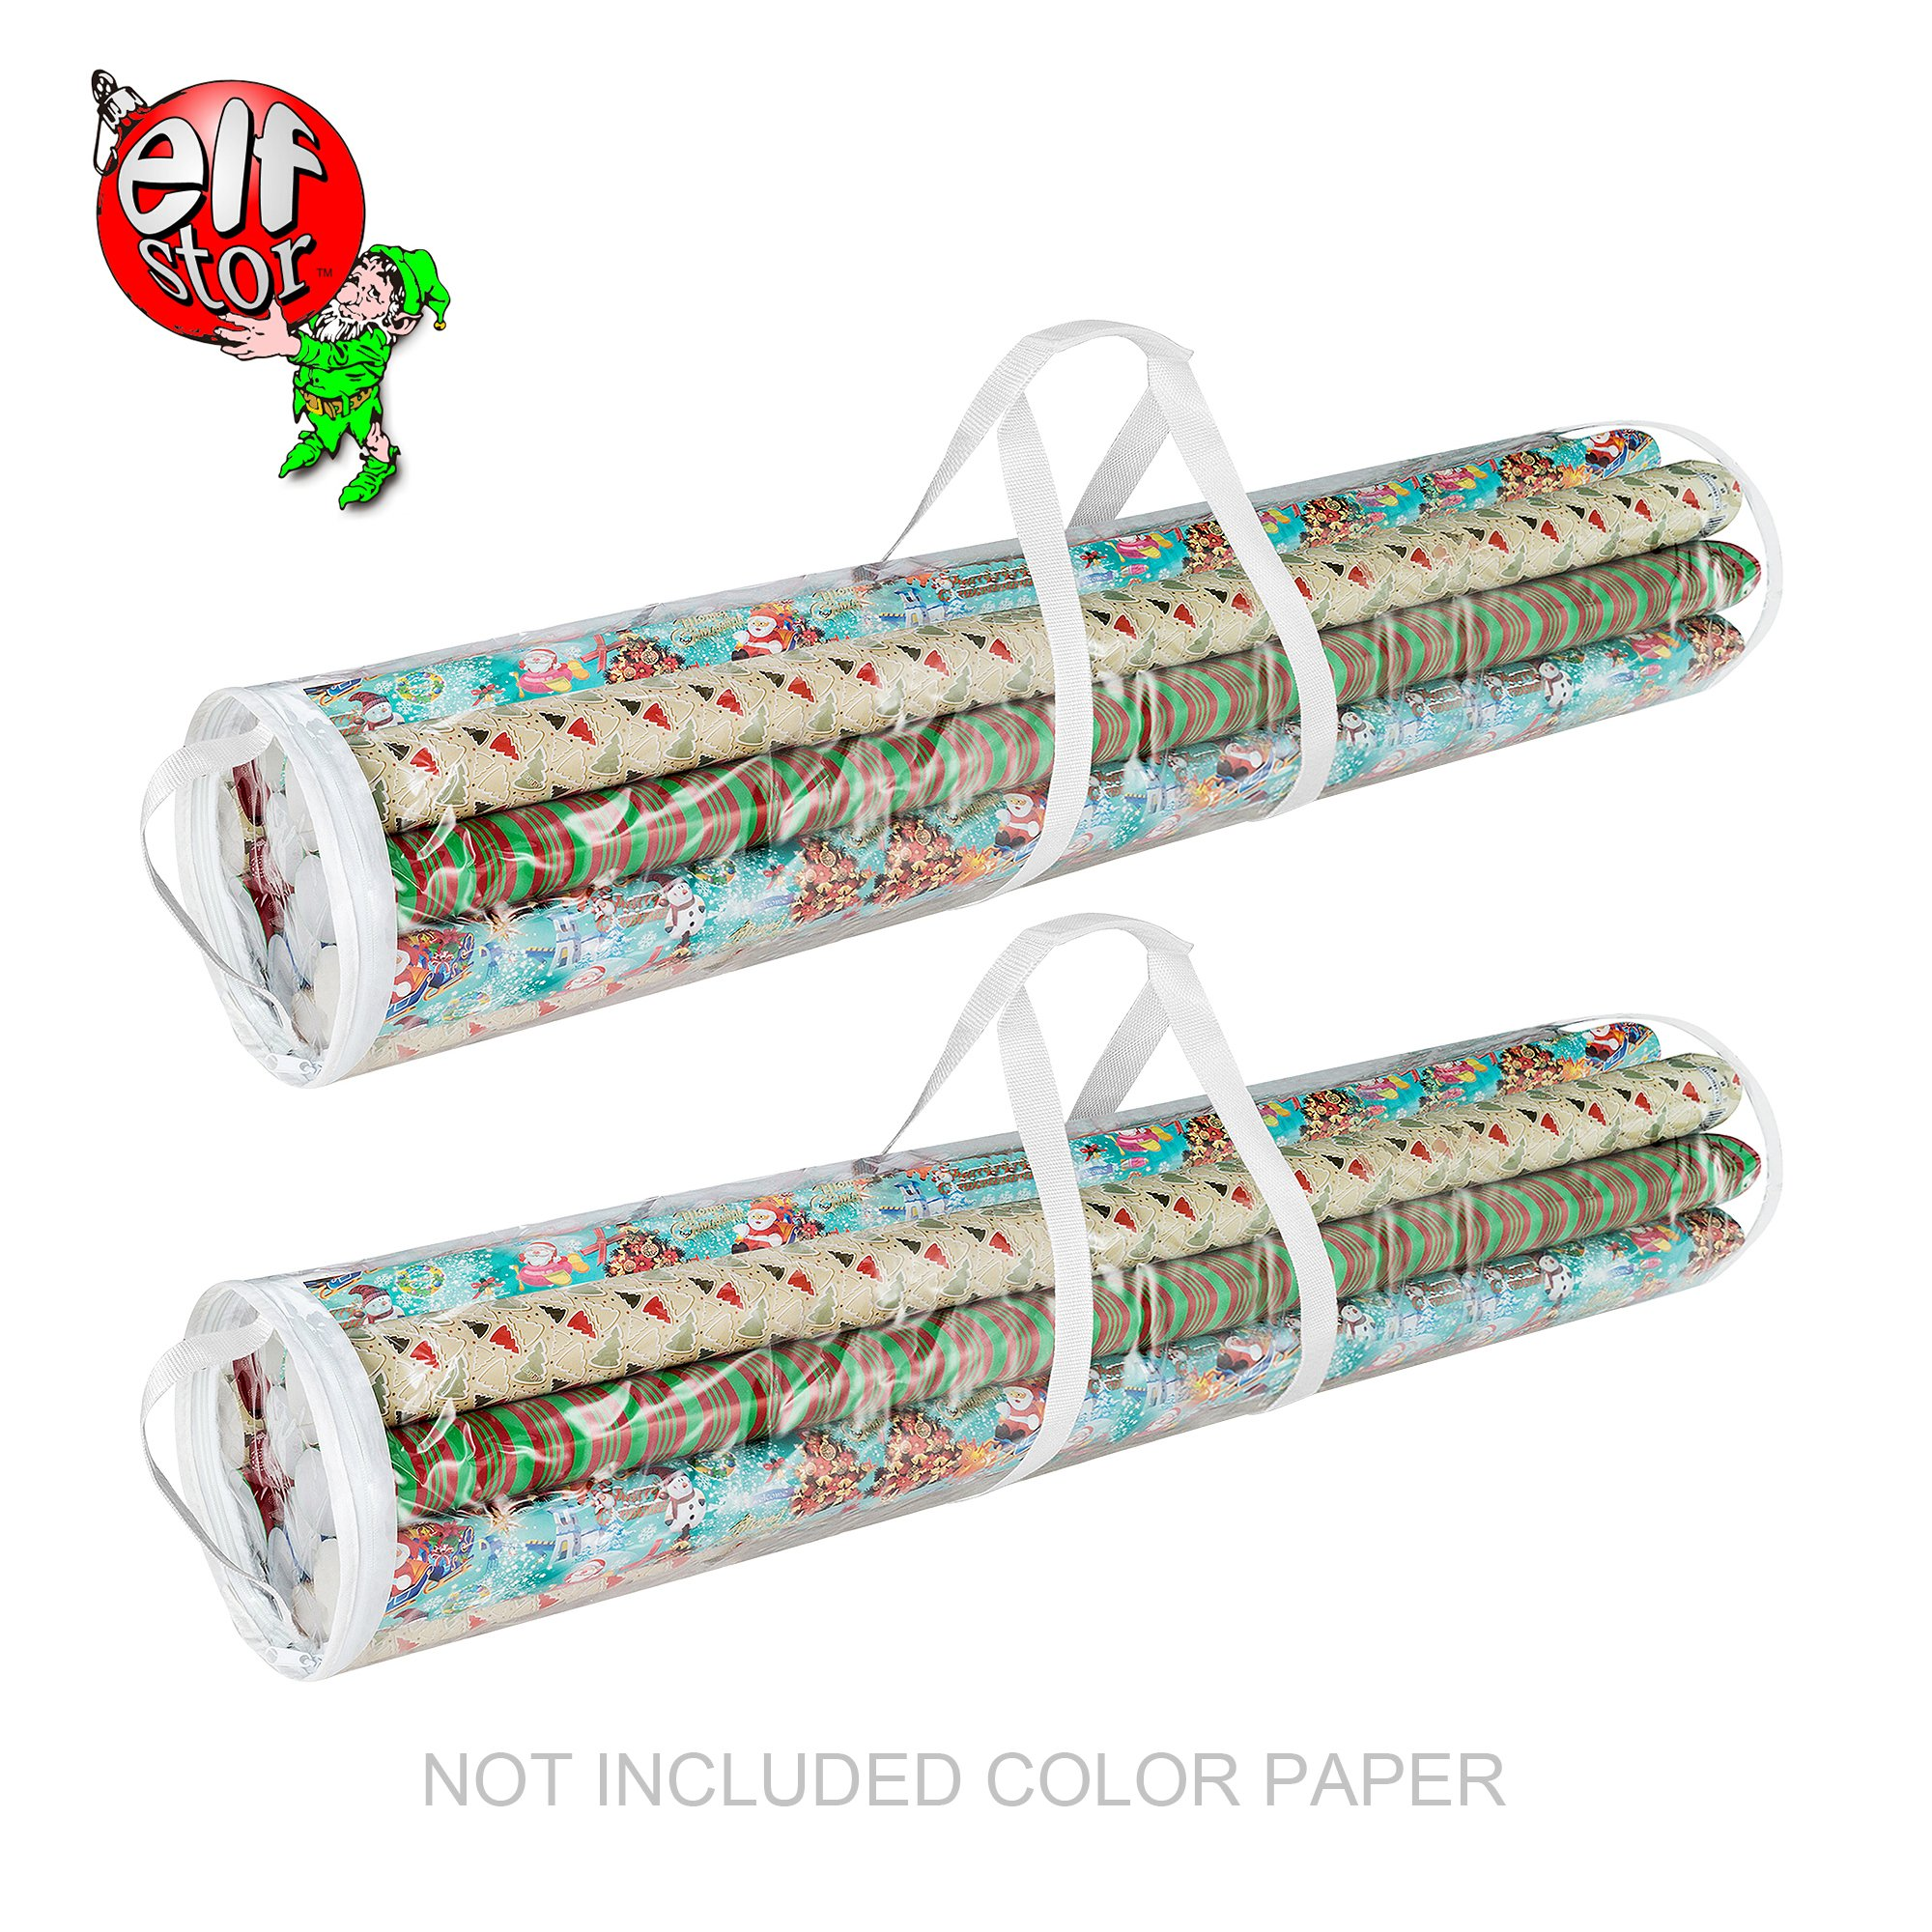 Elf Stor 83-DT5054 Gift Wrap Storage Bags Holds 40-Inch Rolls of Paper-2 Pack by Elf Stor